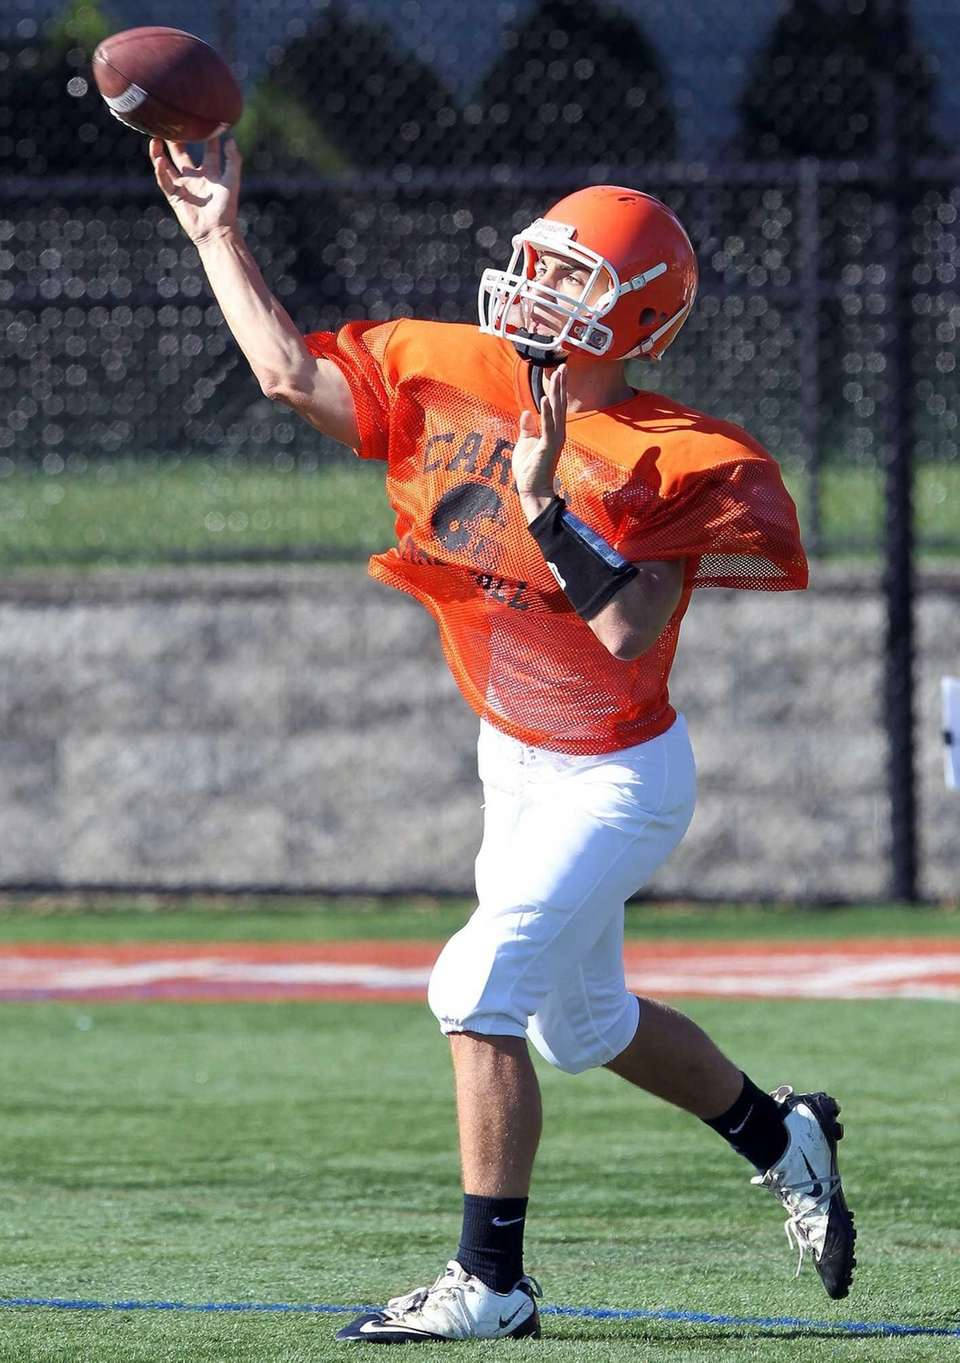 QB Ray Catapano (10) with the pass at